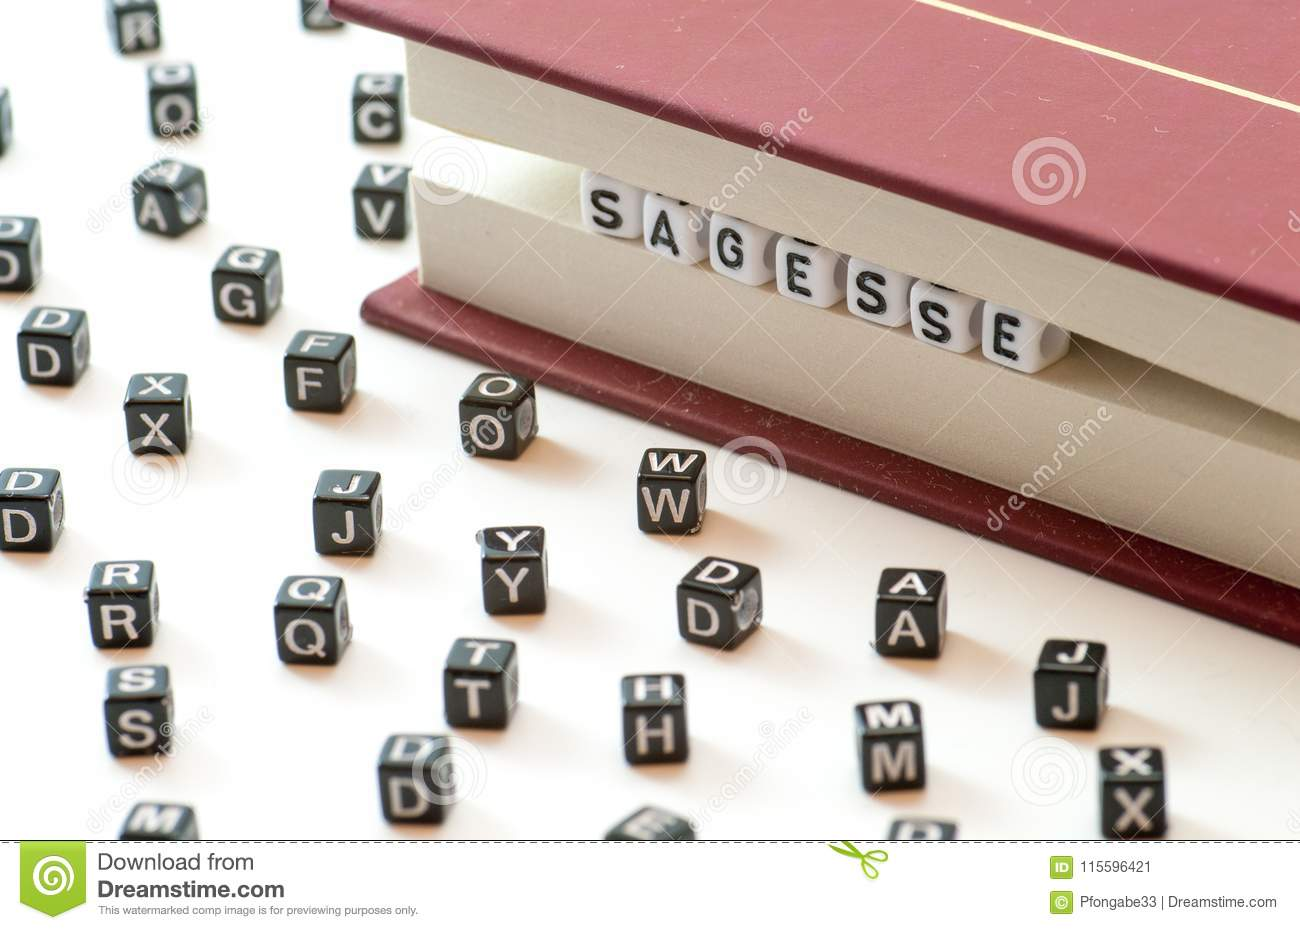 French Word Sagesse Meaning Wisdom Written With Letters Trapped